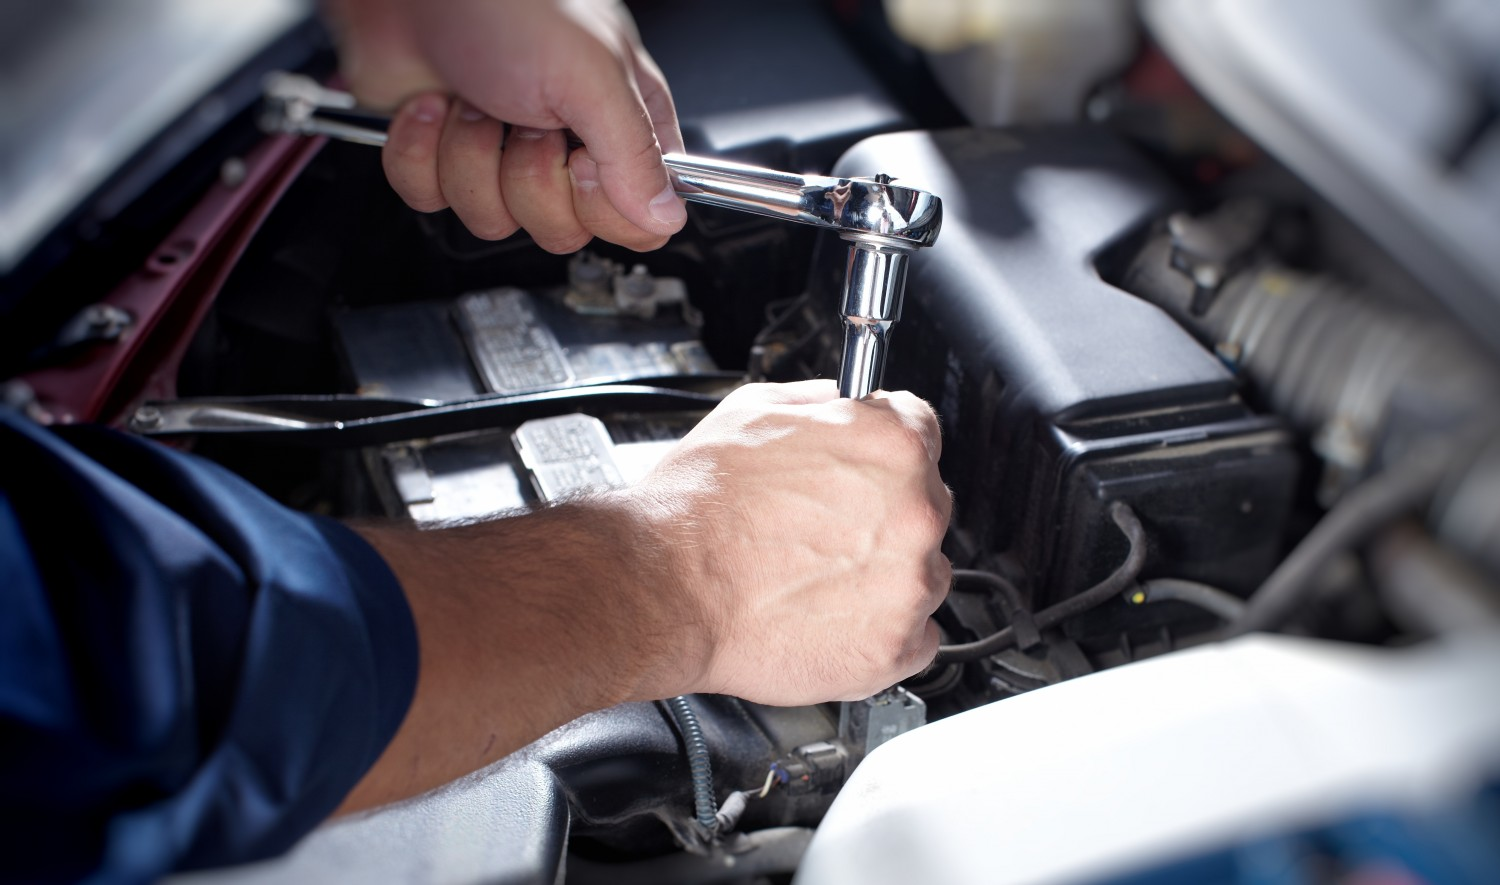 Doorstep Car Repair Services Saves Your Day